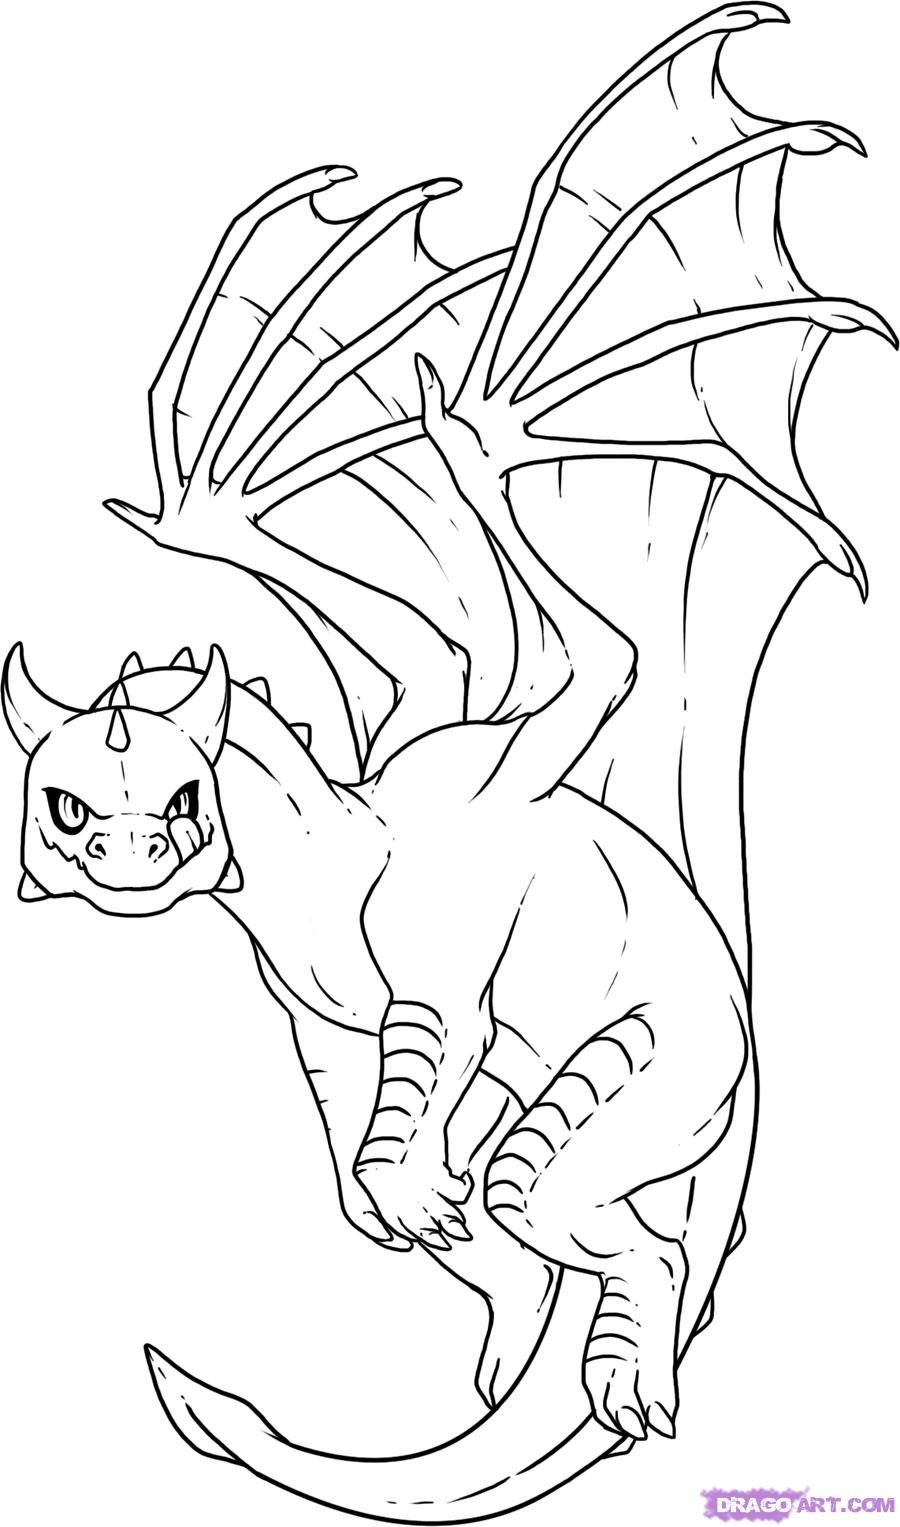 Dragon Coloring Pages How to Draw Baby Dragon Step by